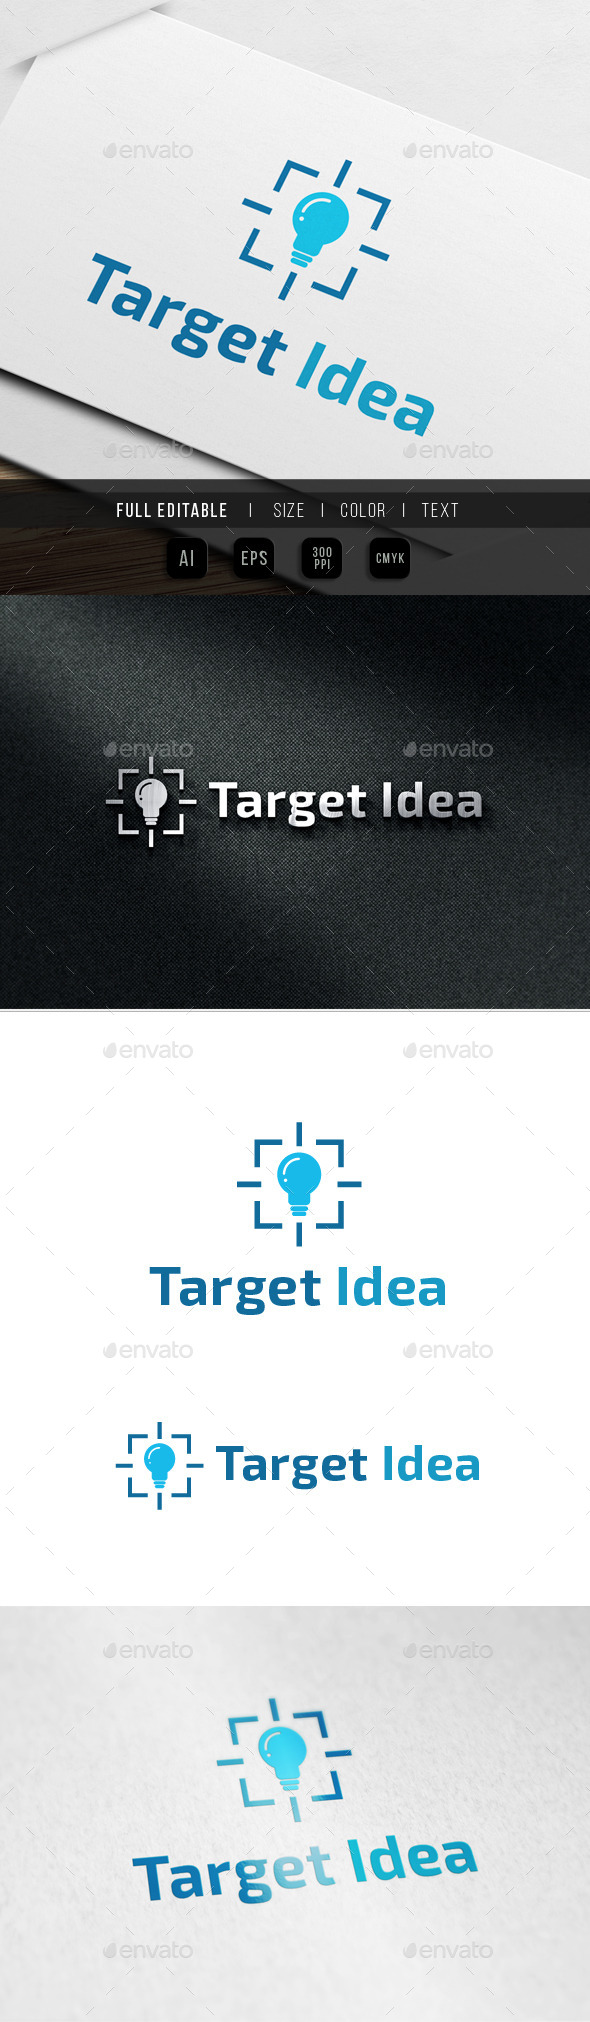 GraphicRiver Target Photo 9915475